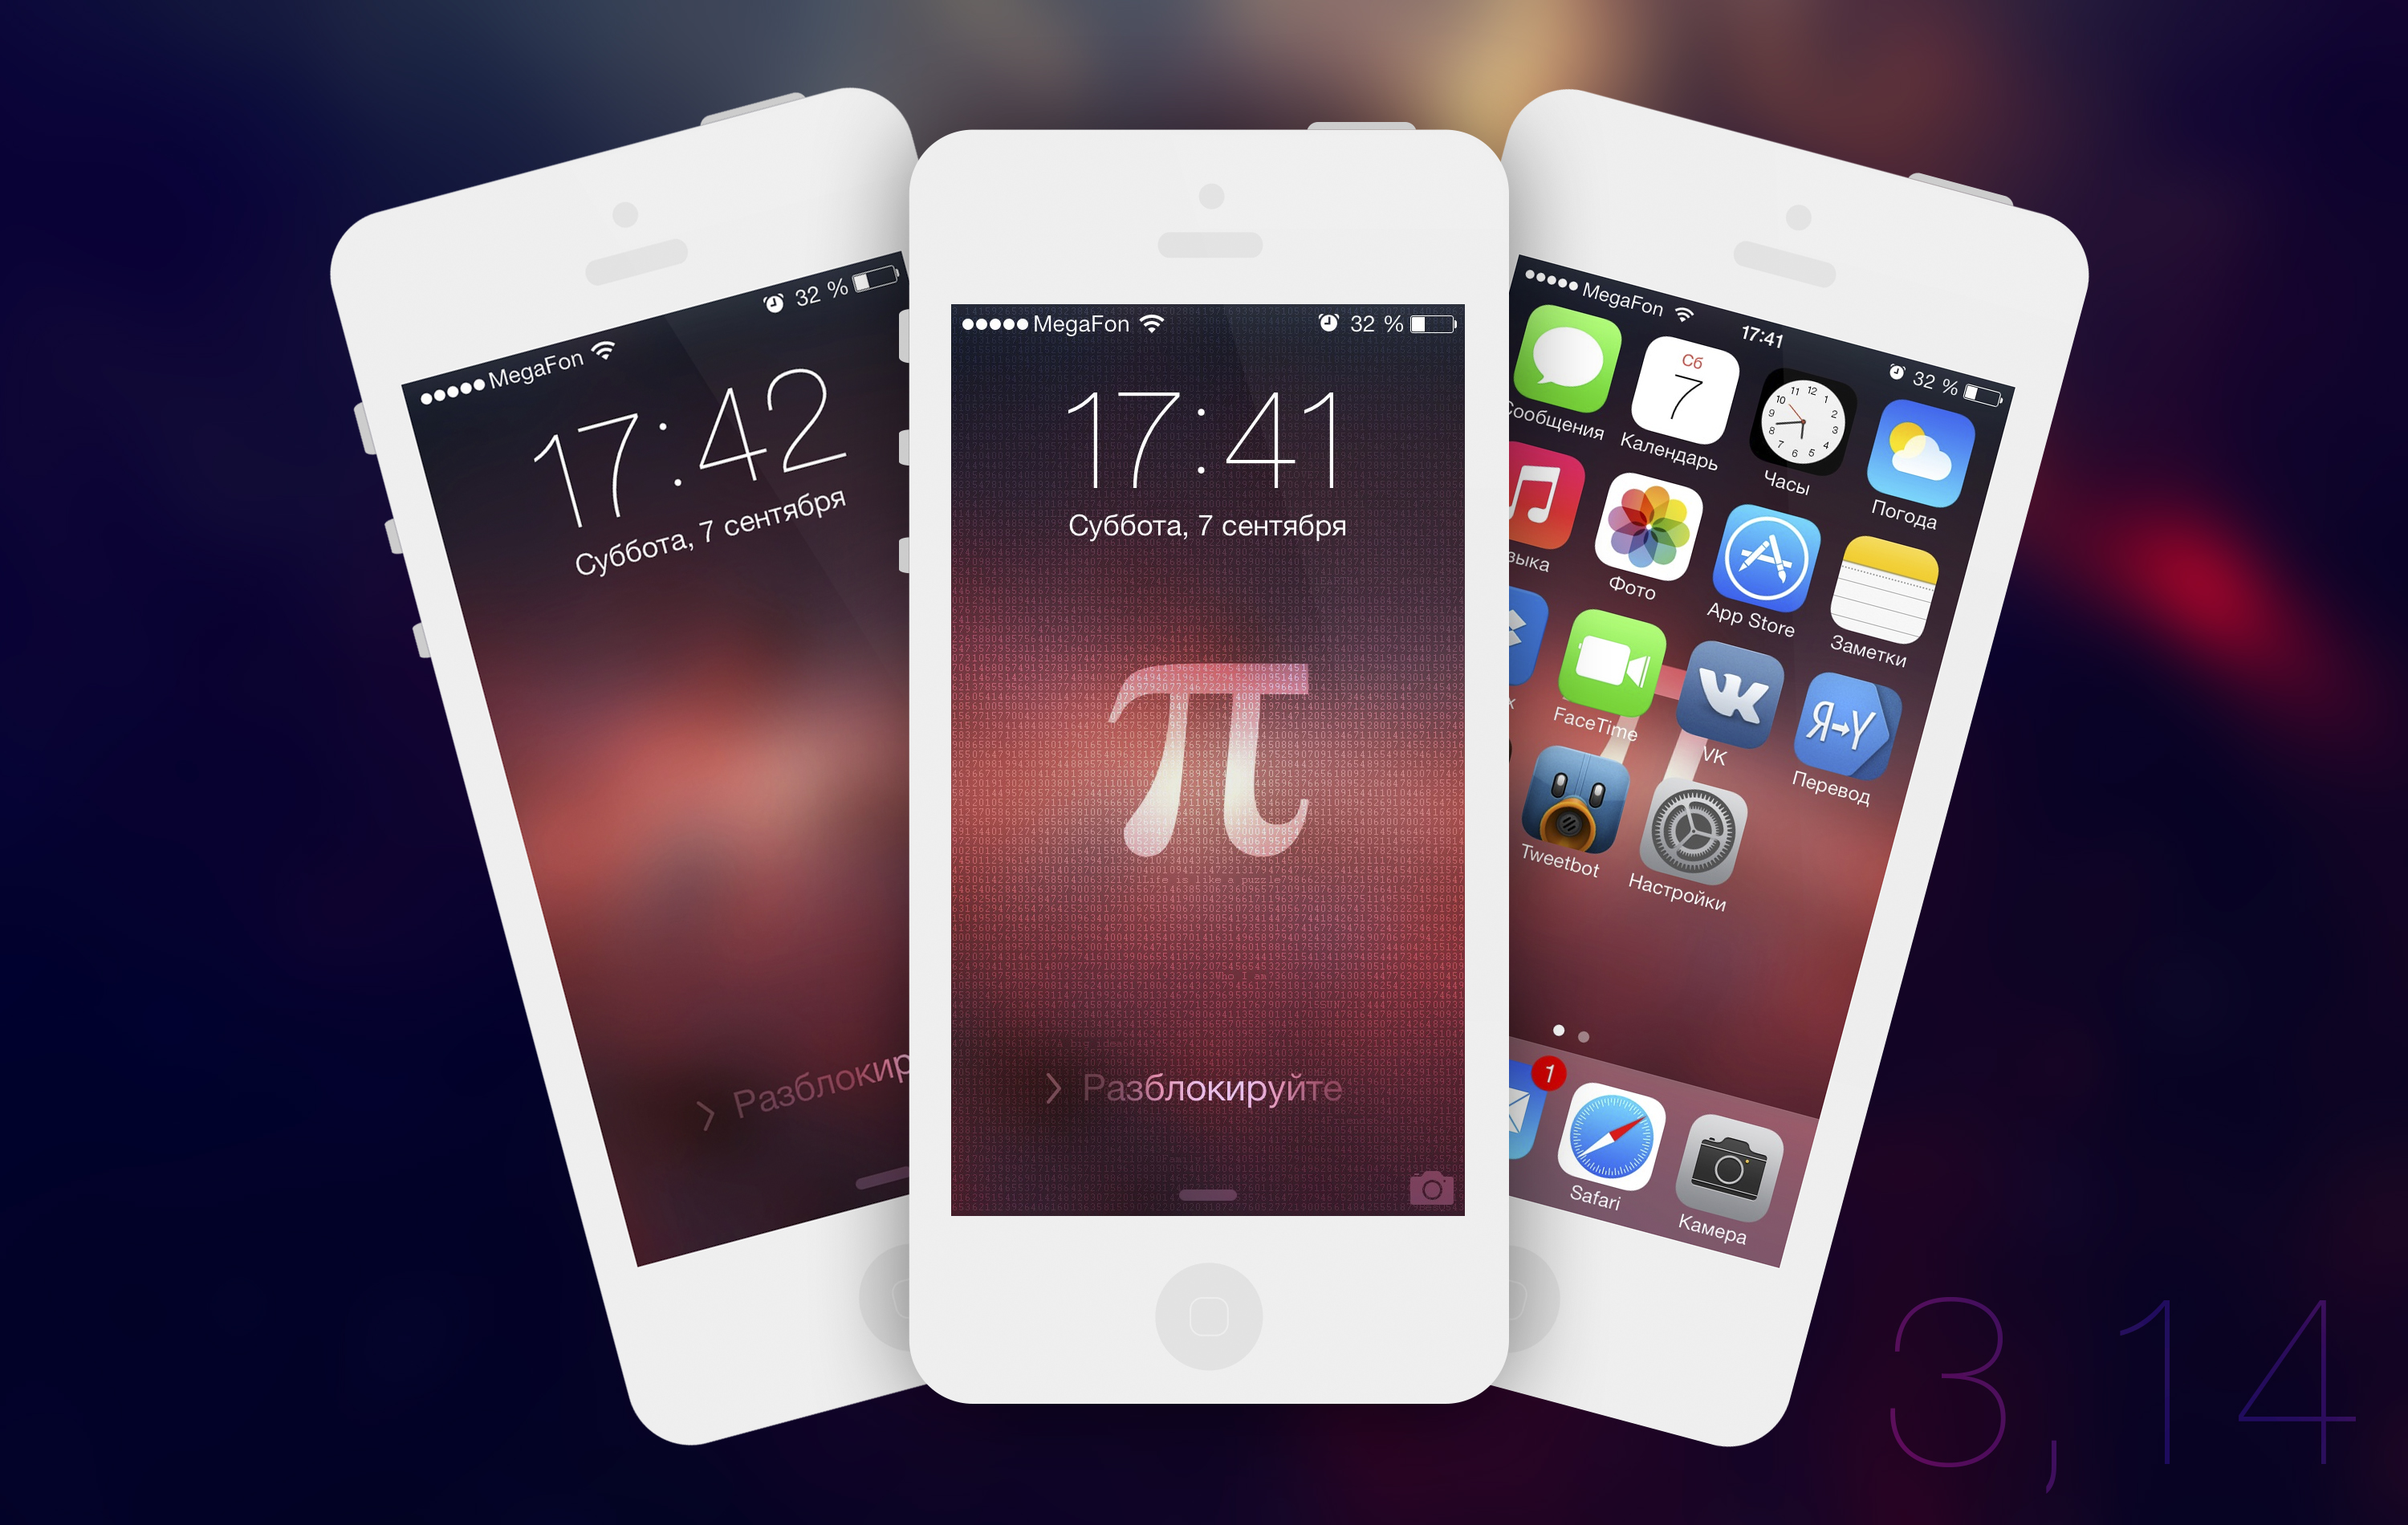 Pi - Wallpaper for iPhone 5/4S